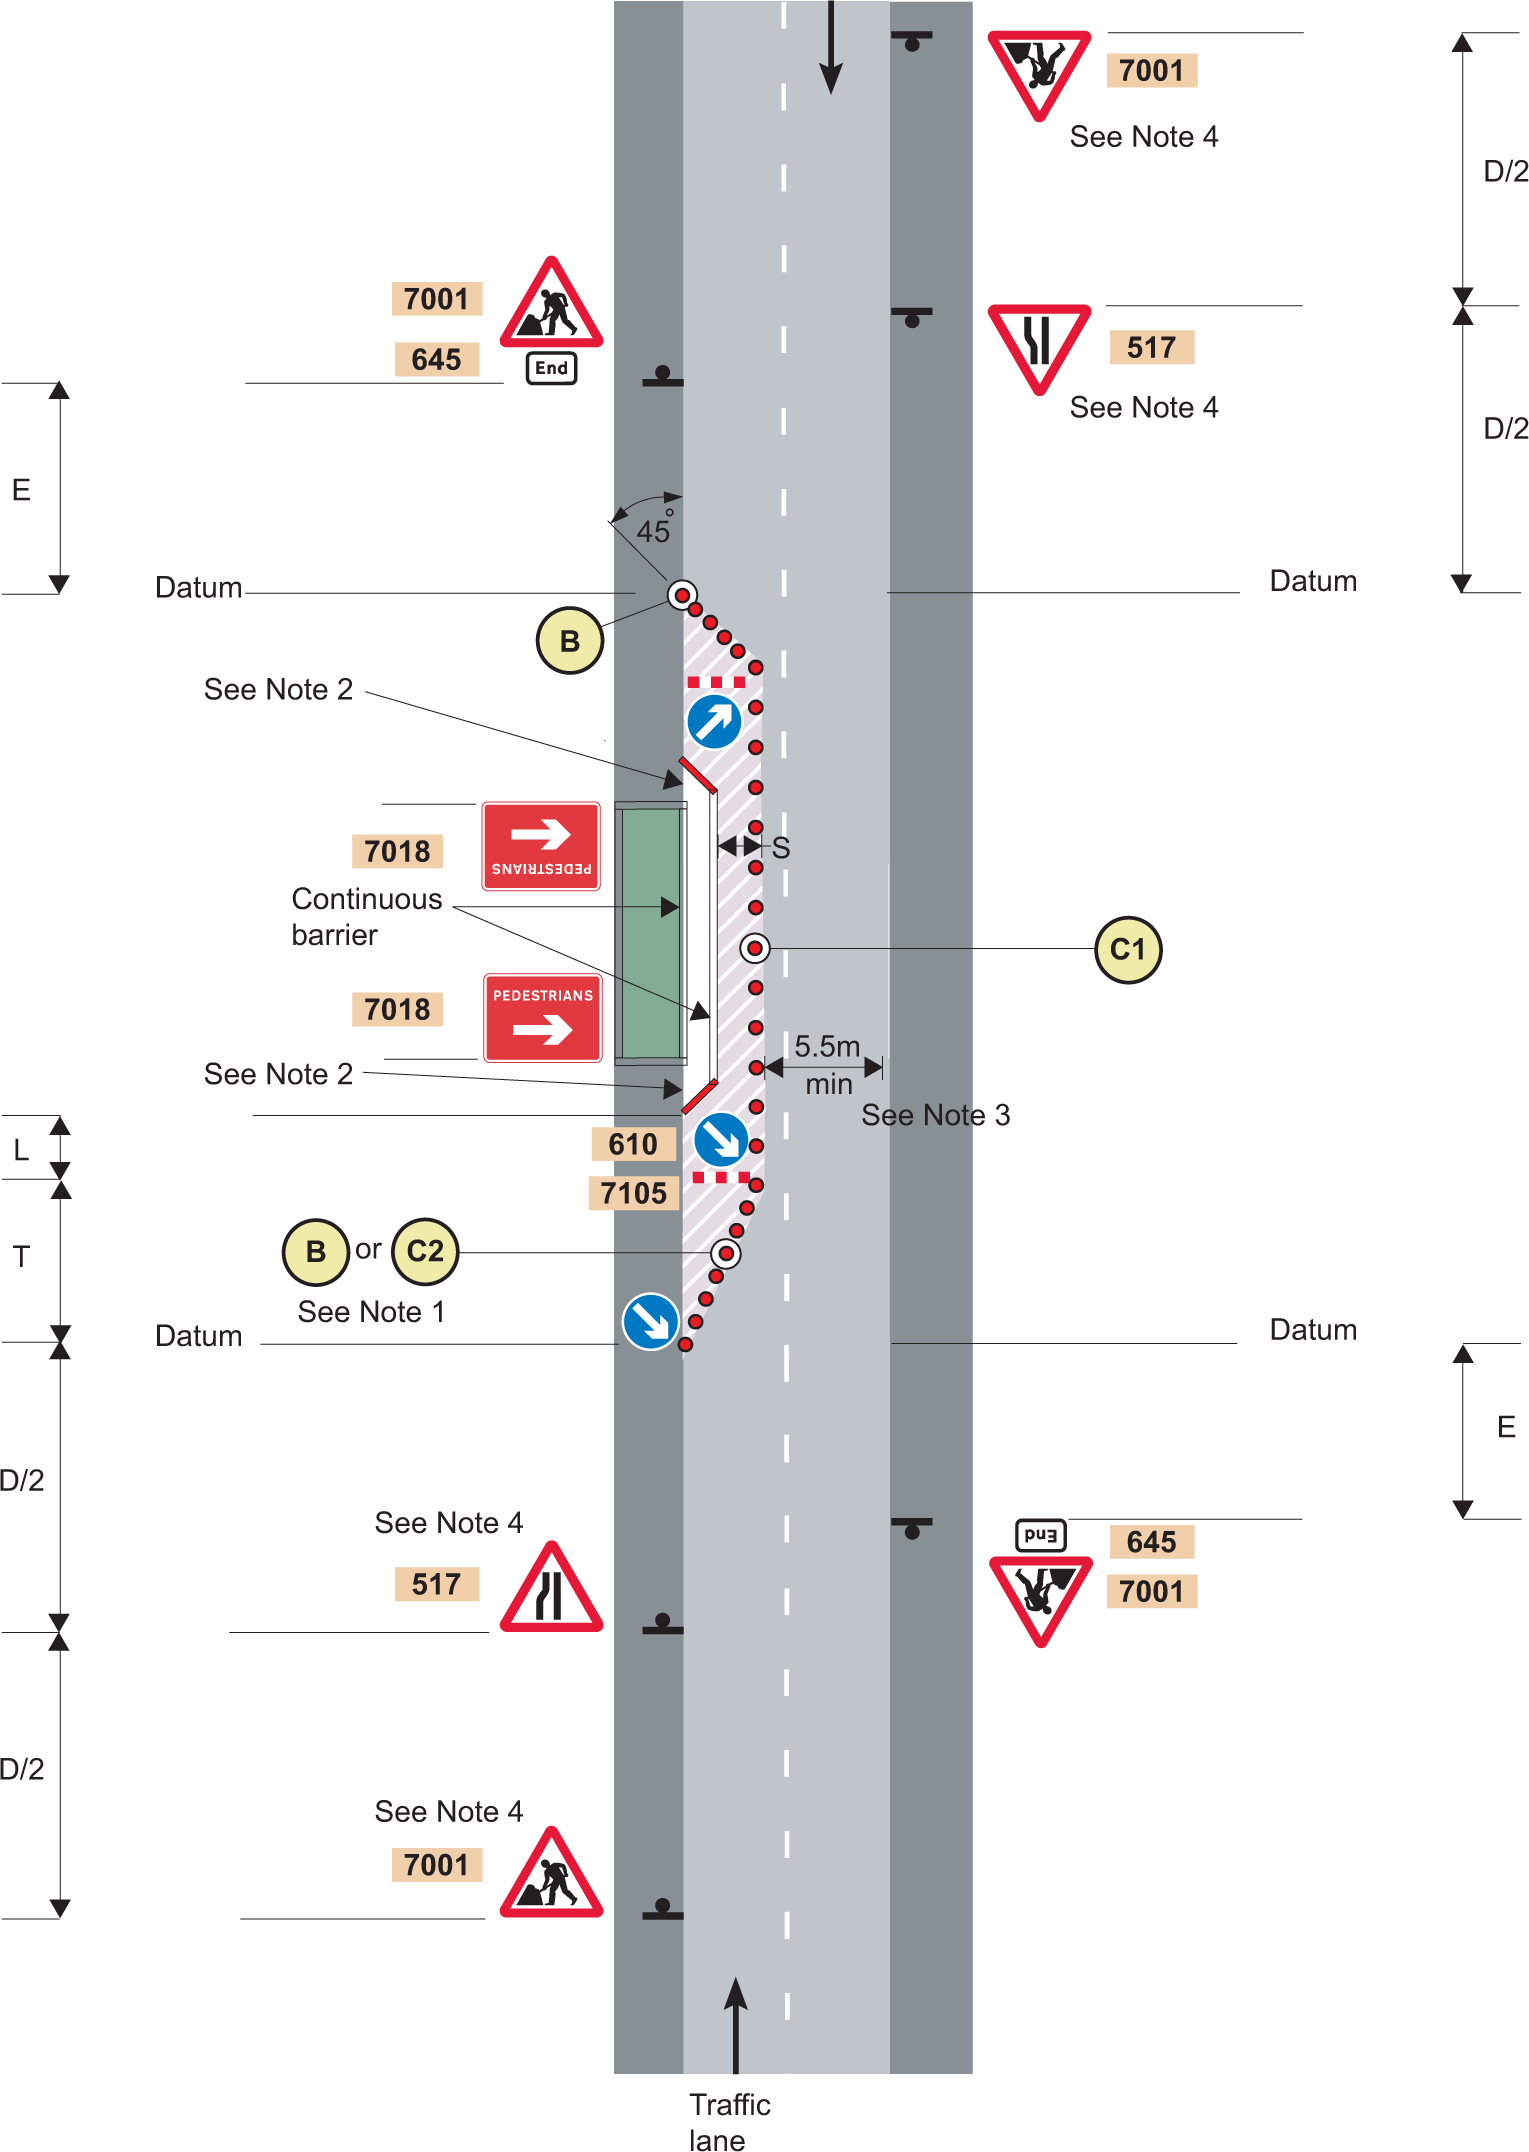 Plan SC1 - two way traffic on a single carriageway road